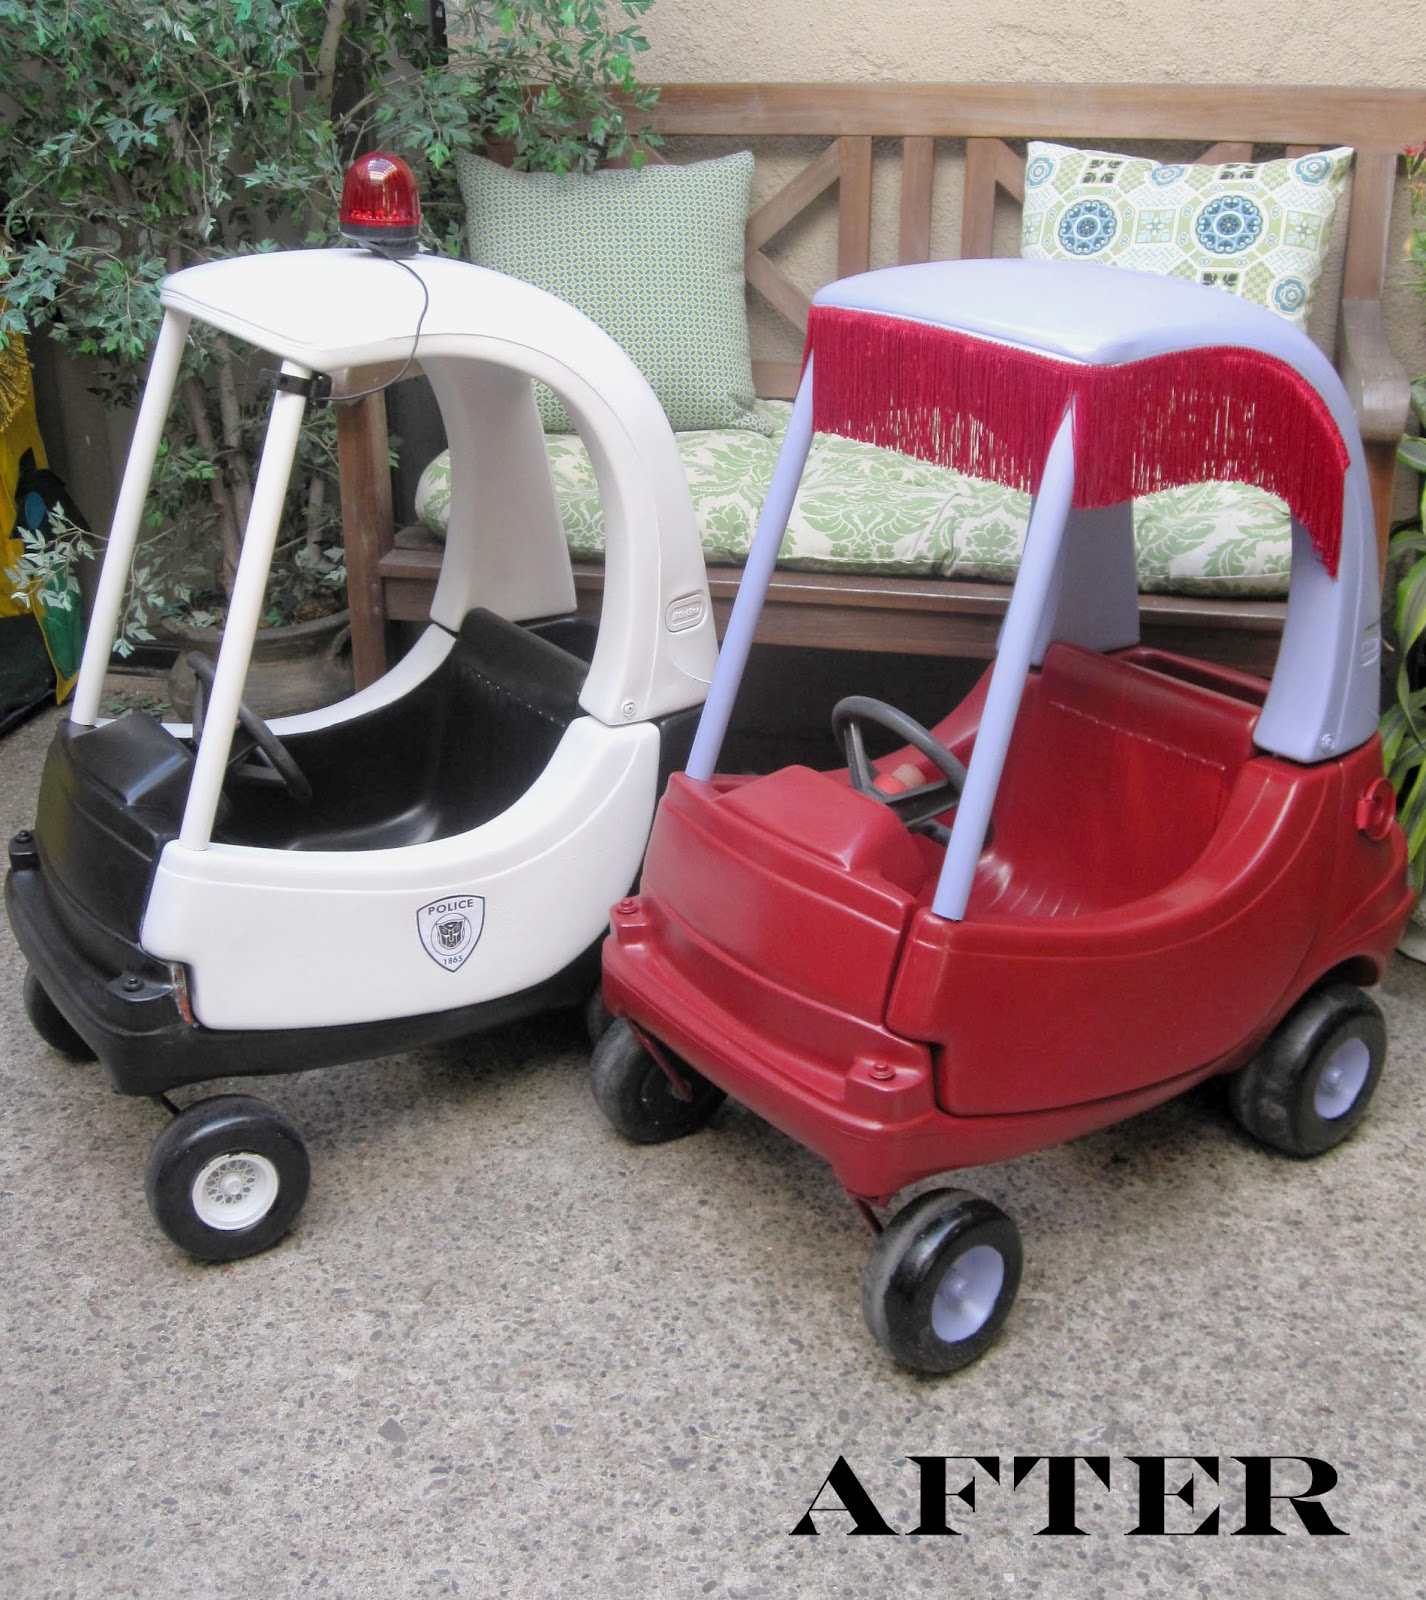 The Scarlett Letters: Pimp My (Cozy Coupe) Rides